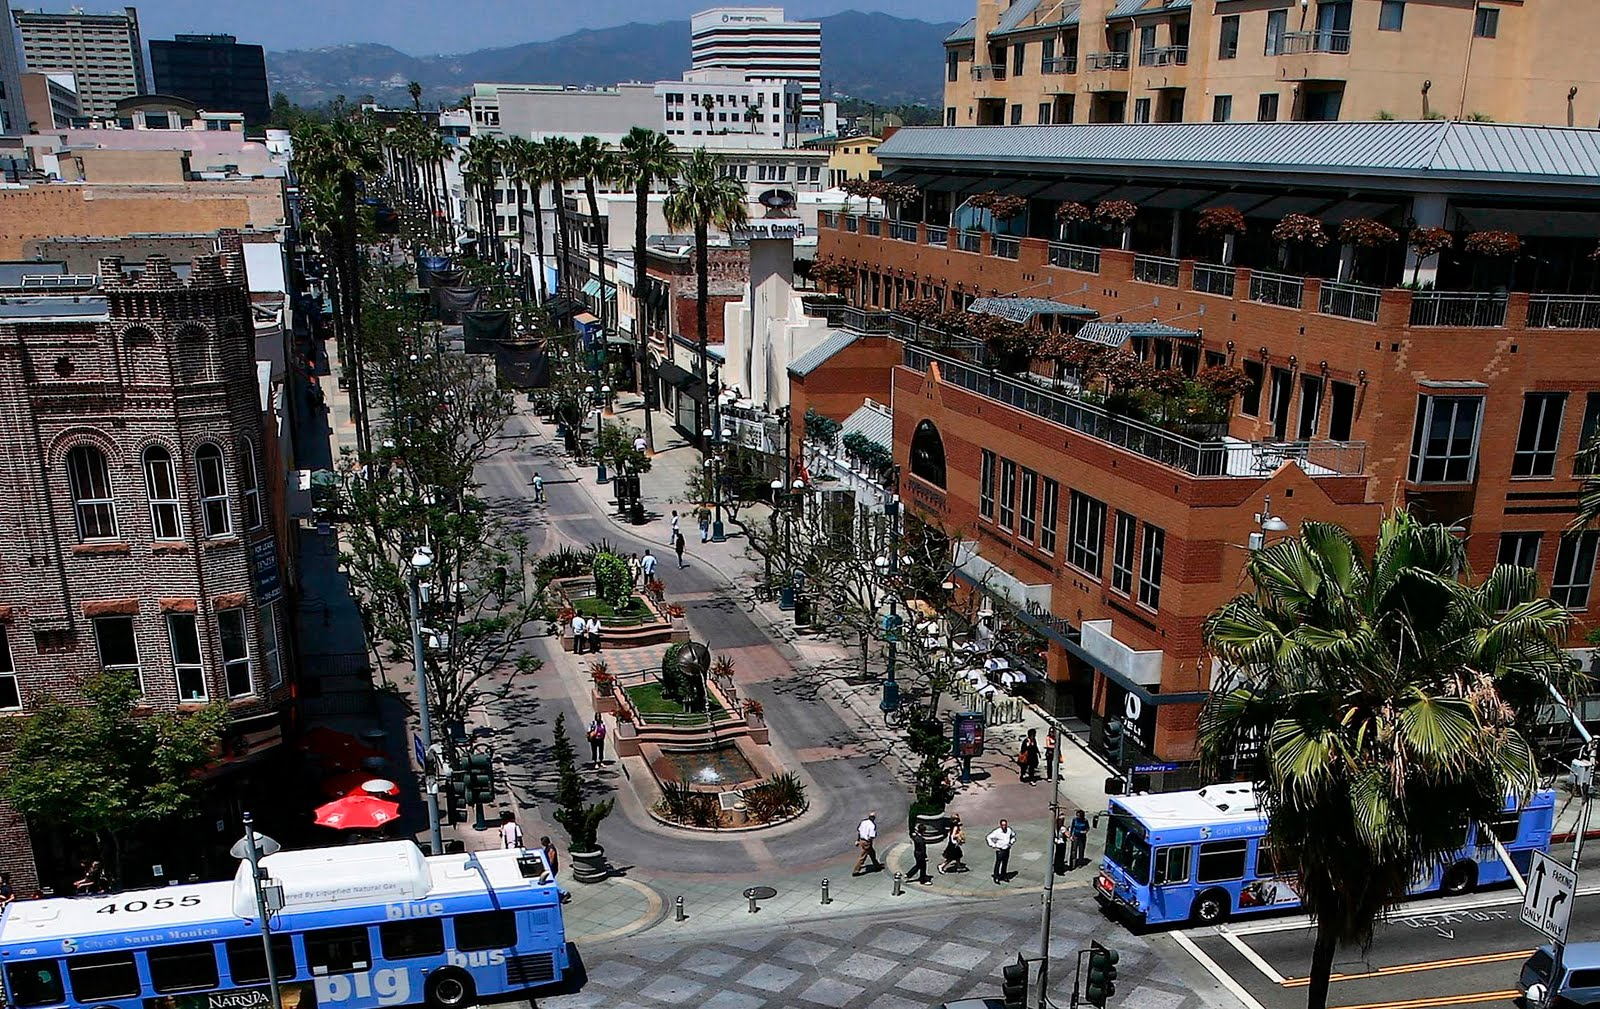 A listing of retail stores located on or around 3rd Street Promenade in Santa Monica California.